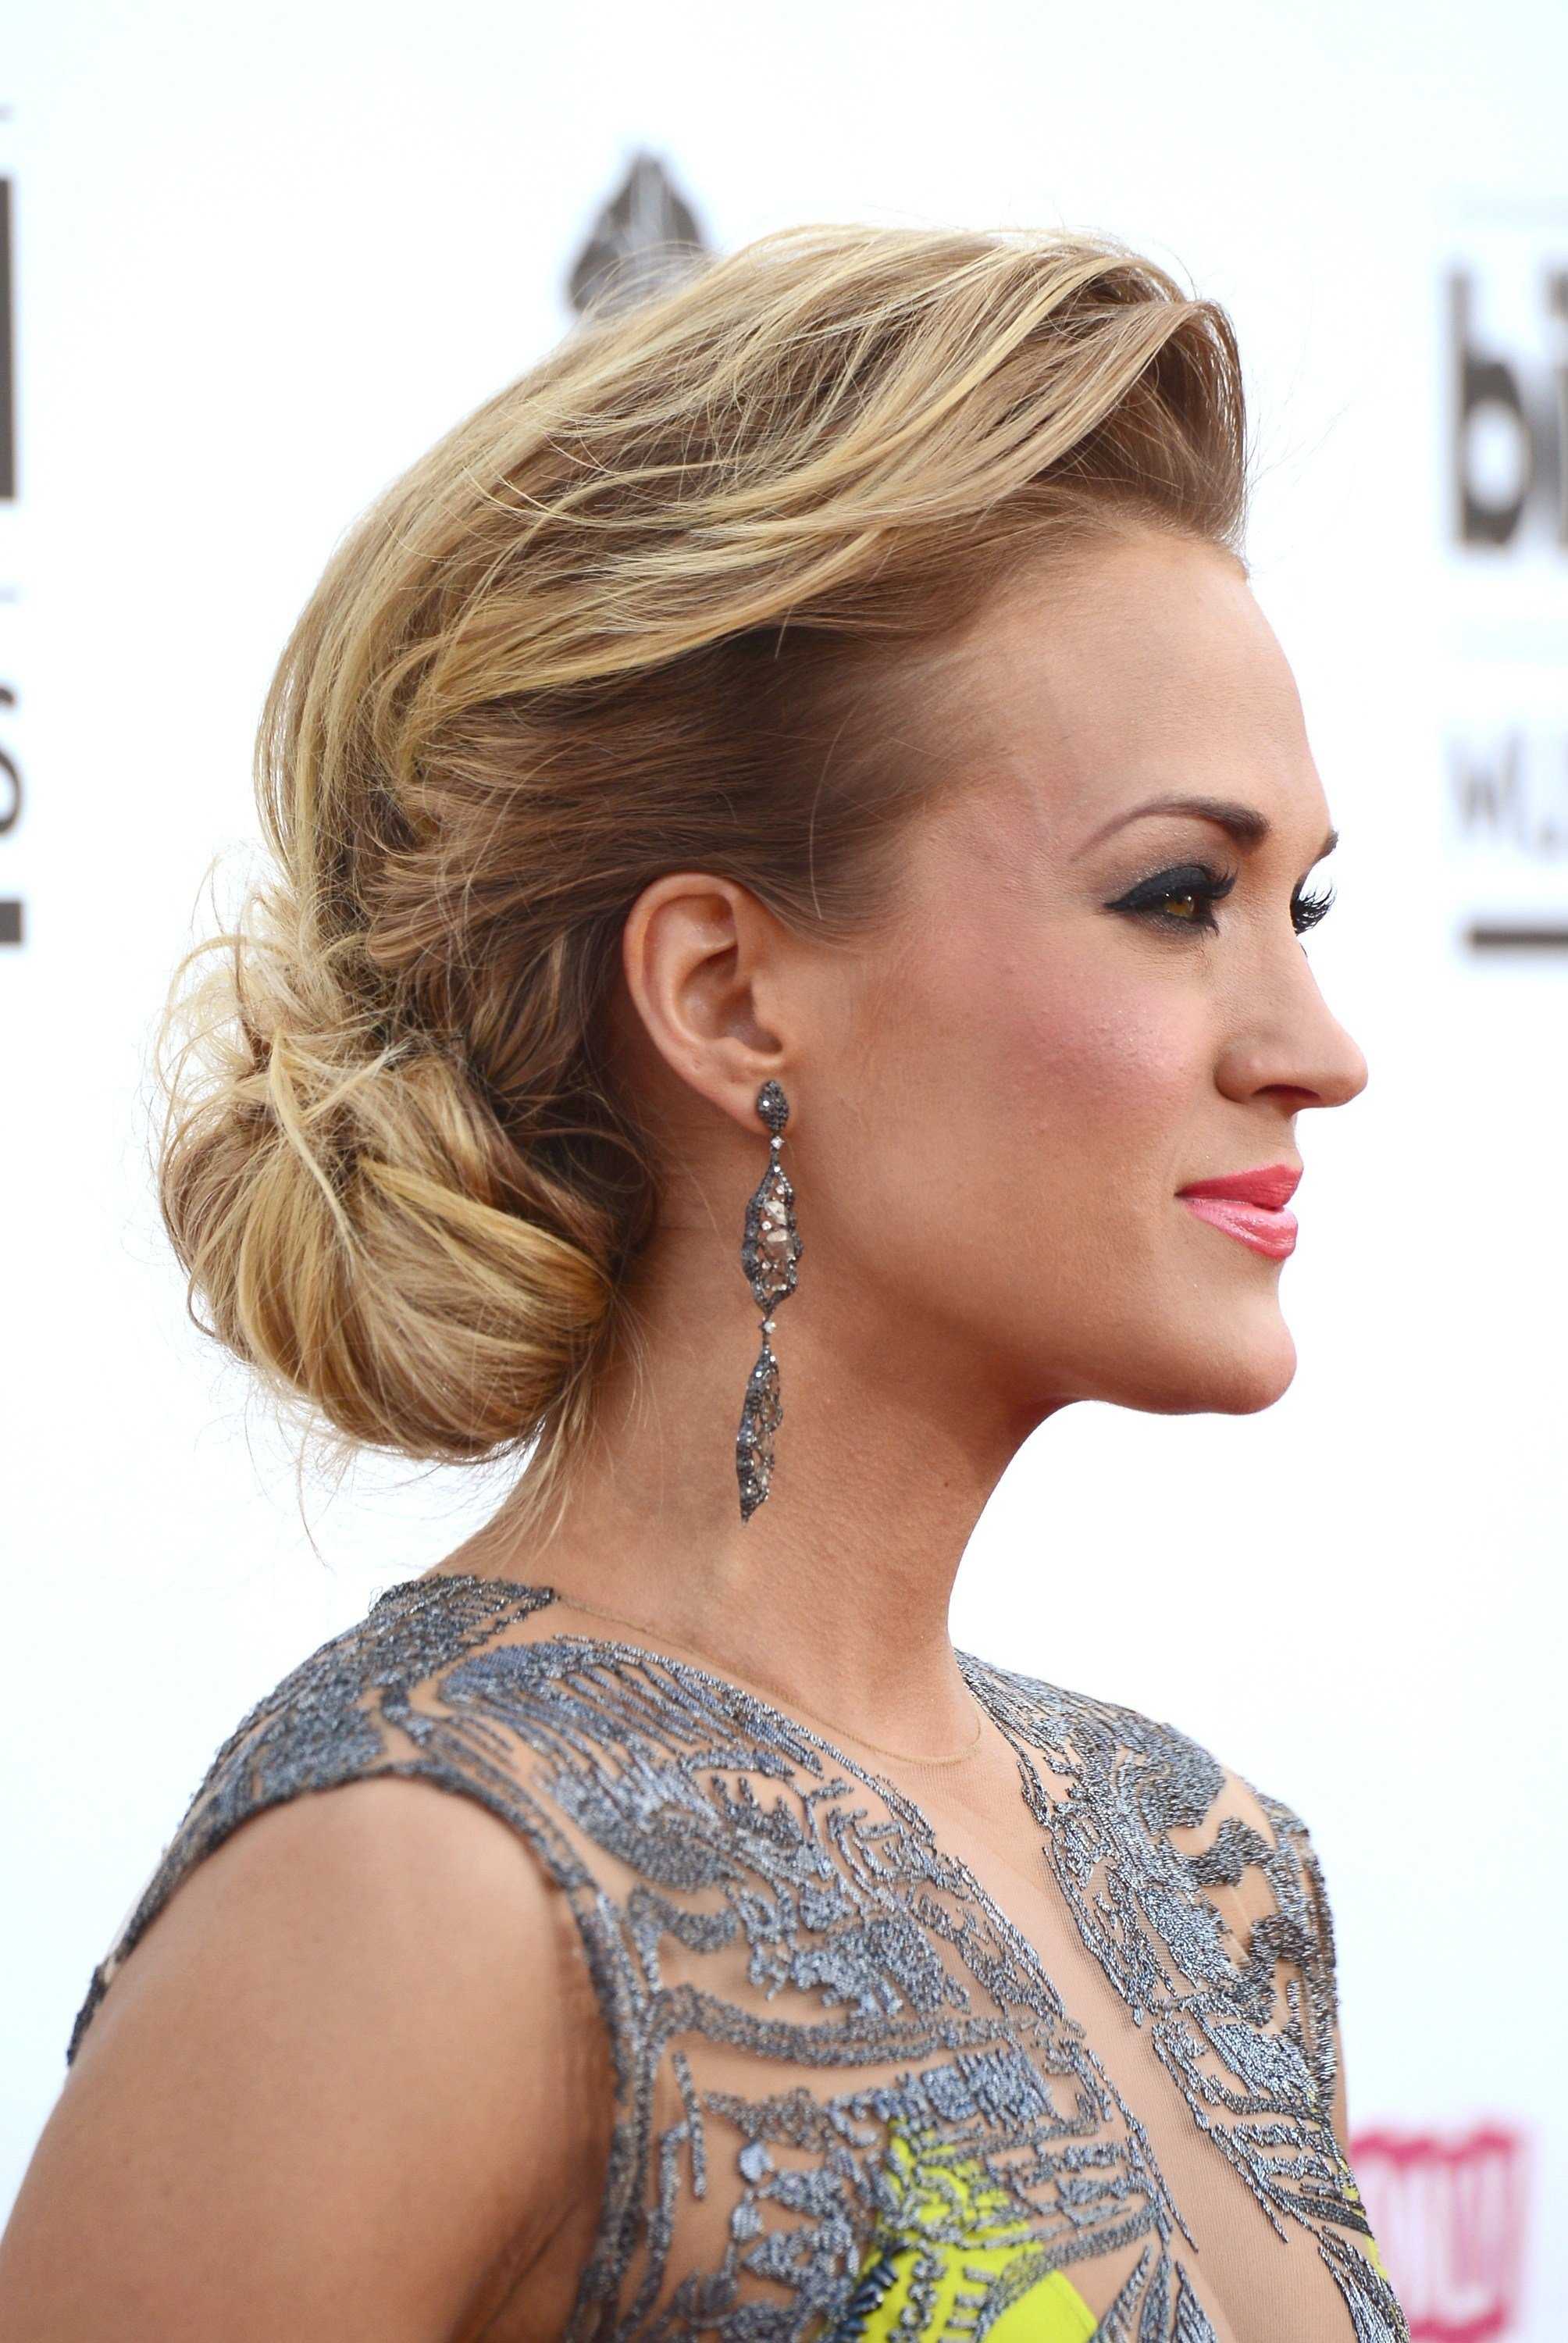 The Best Celebrity Updo Hairstyles Fade Haircut Pictures